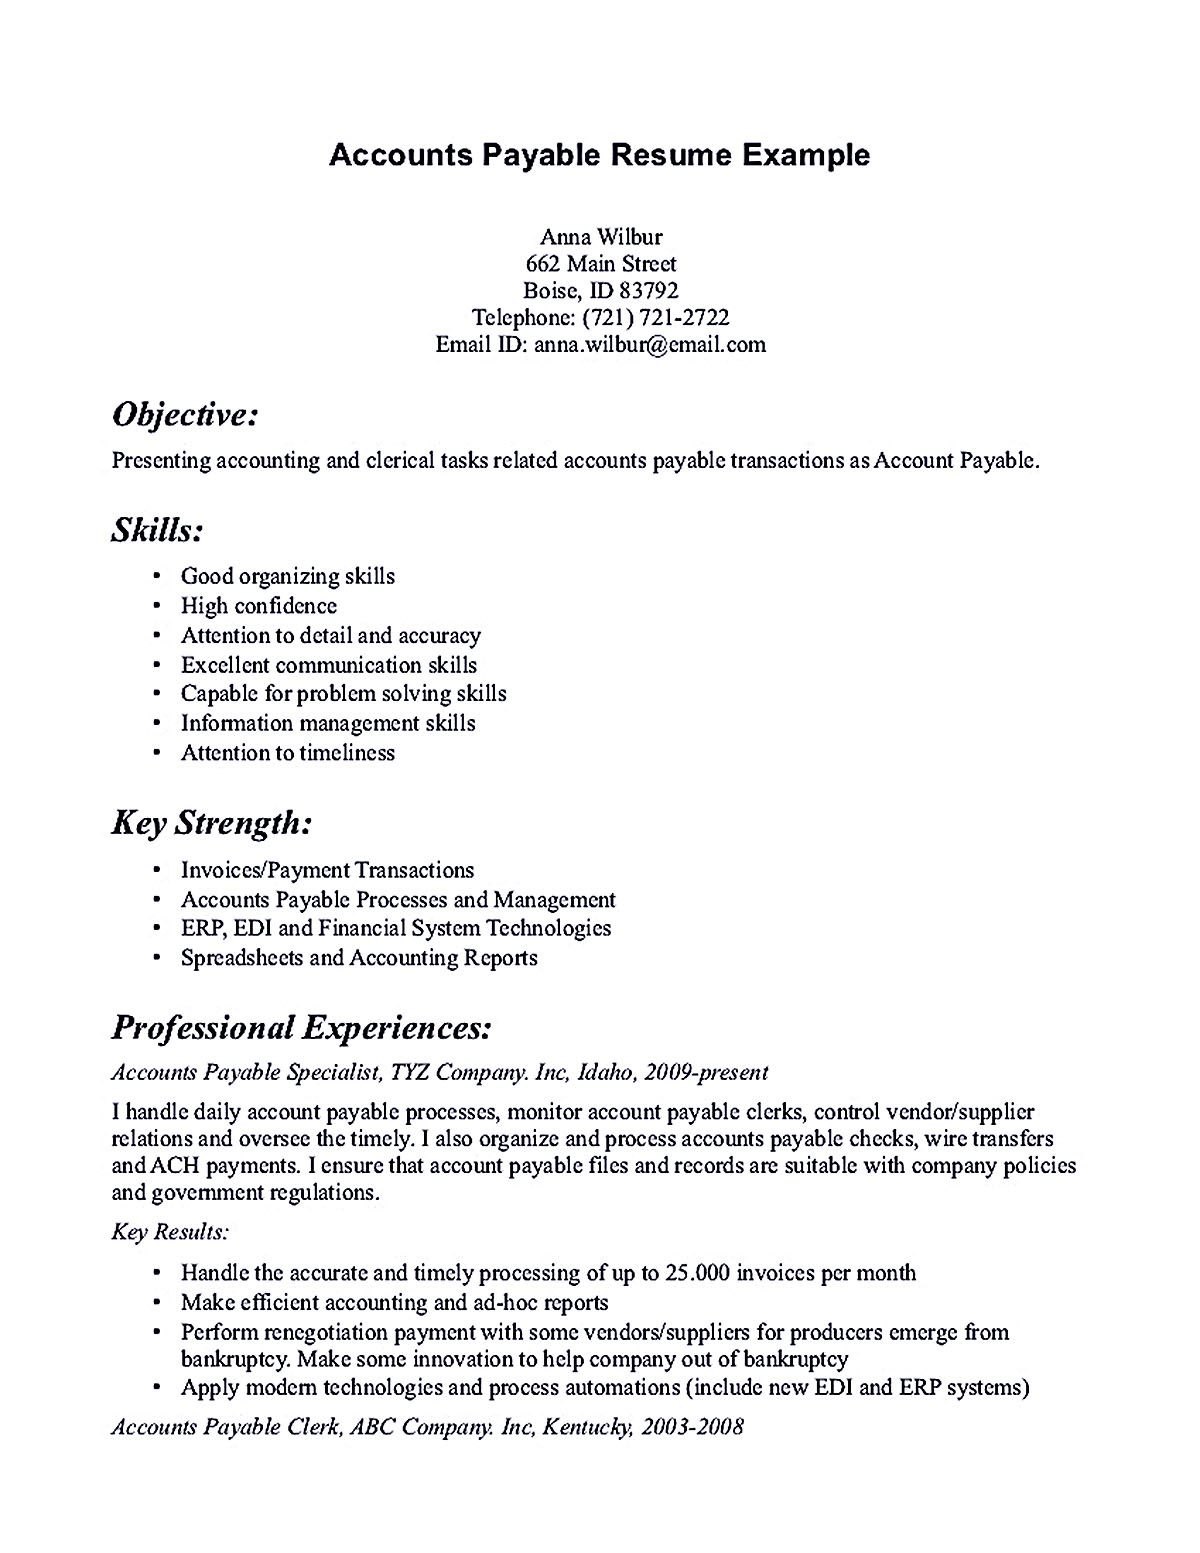 Resume Writing Interpersonal Skills - What are ...